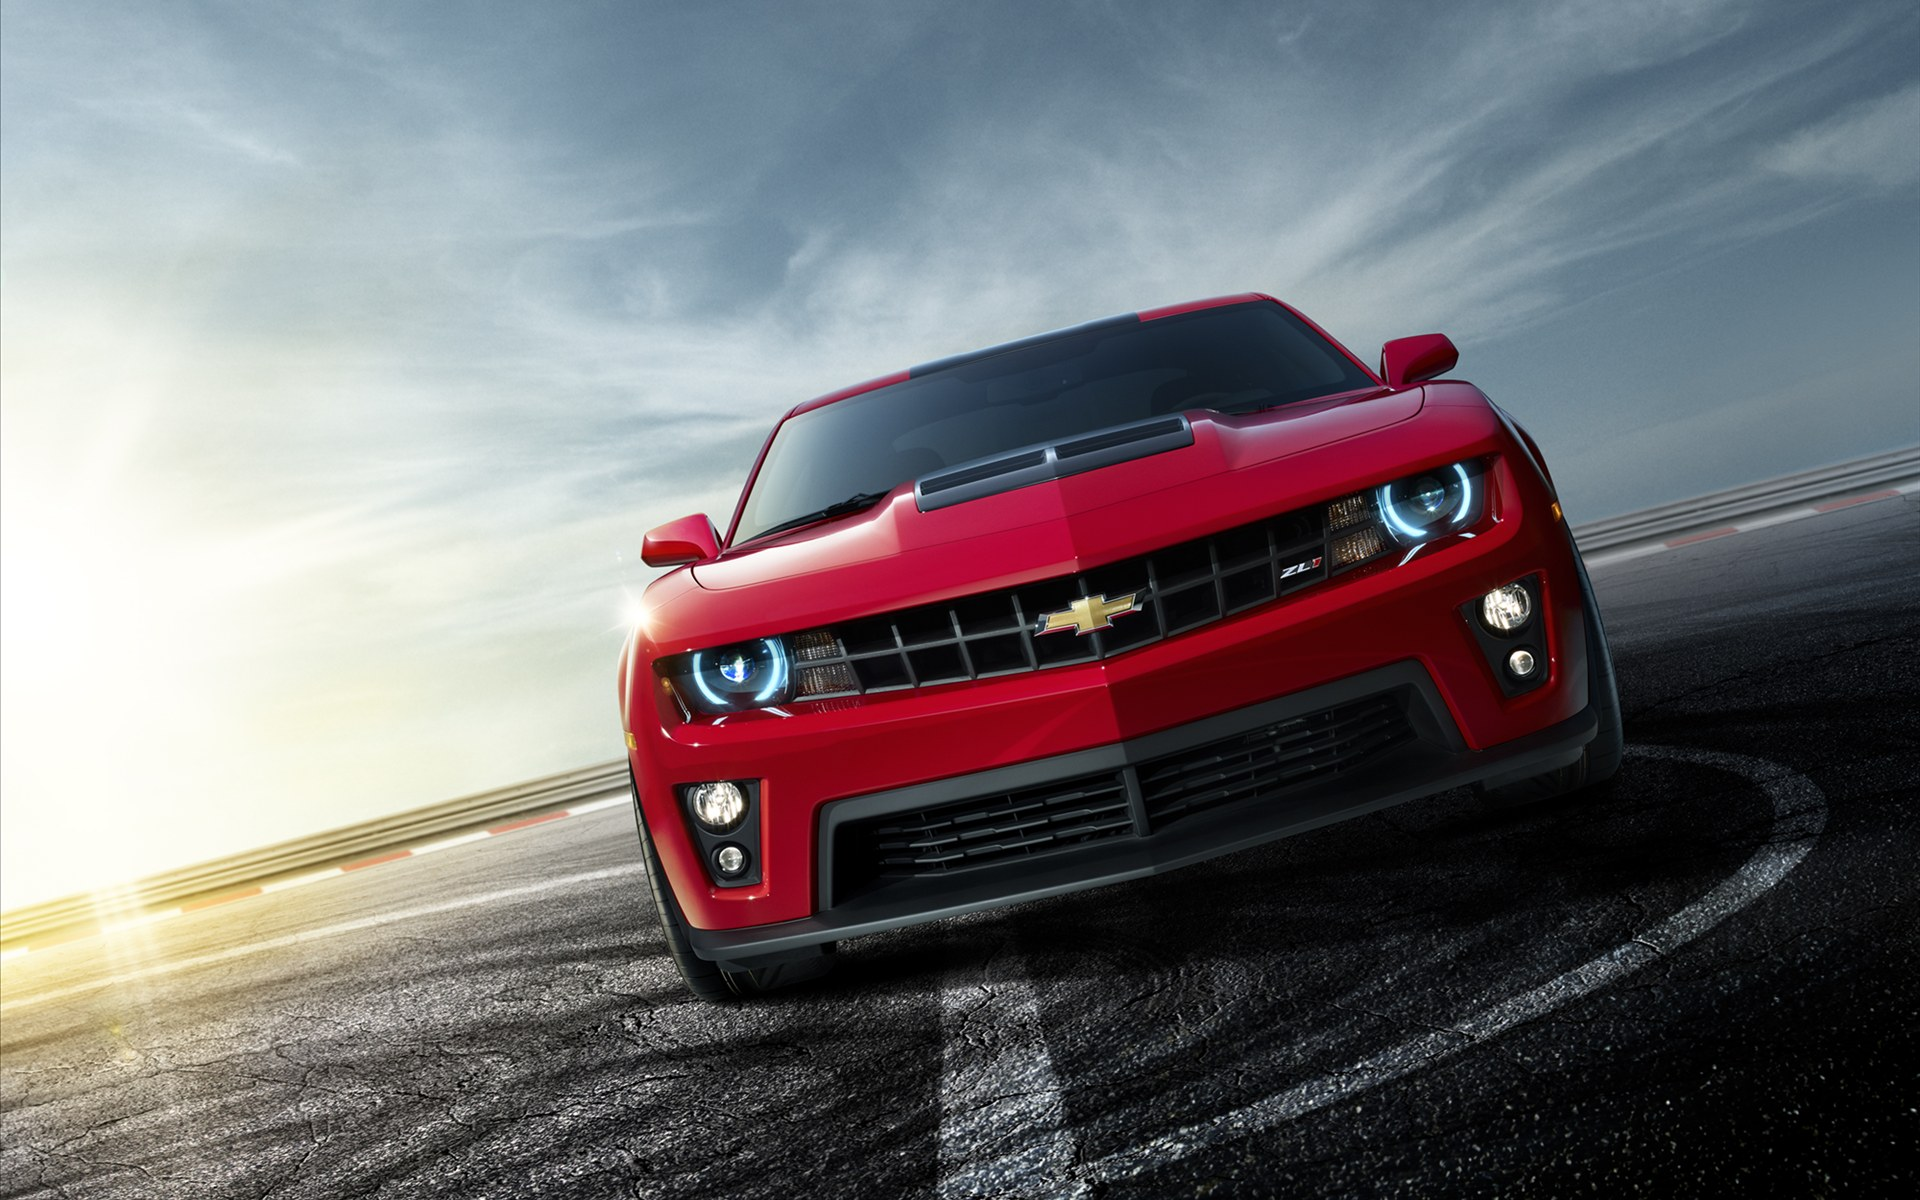 Chevrolet Camaro Zl1 Wallpaper Hd Images amp Pictures   Becuo 1920x1200